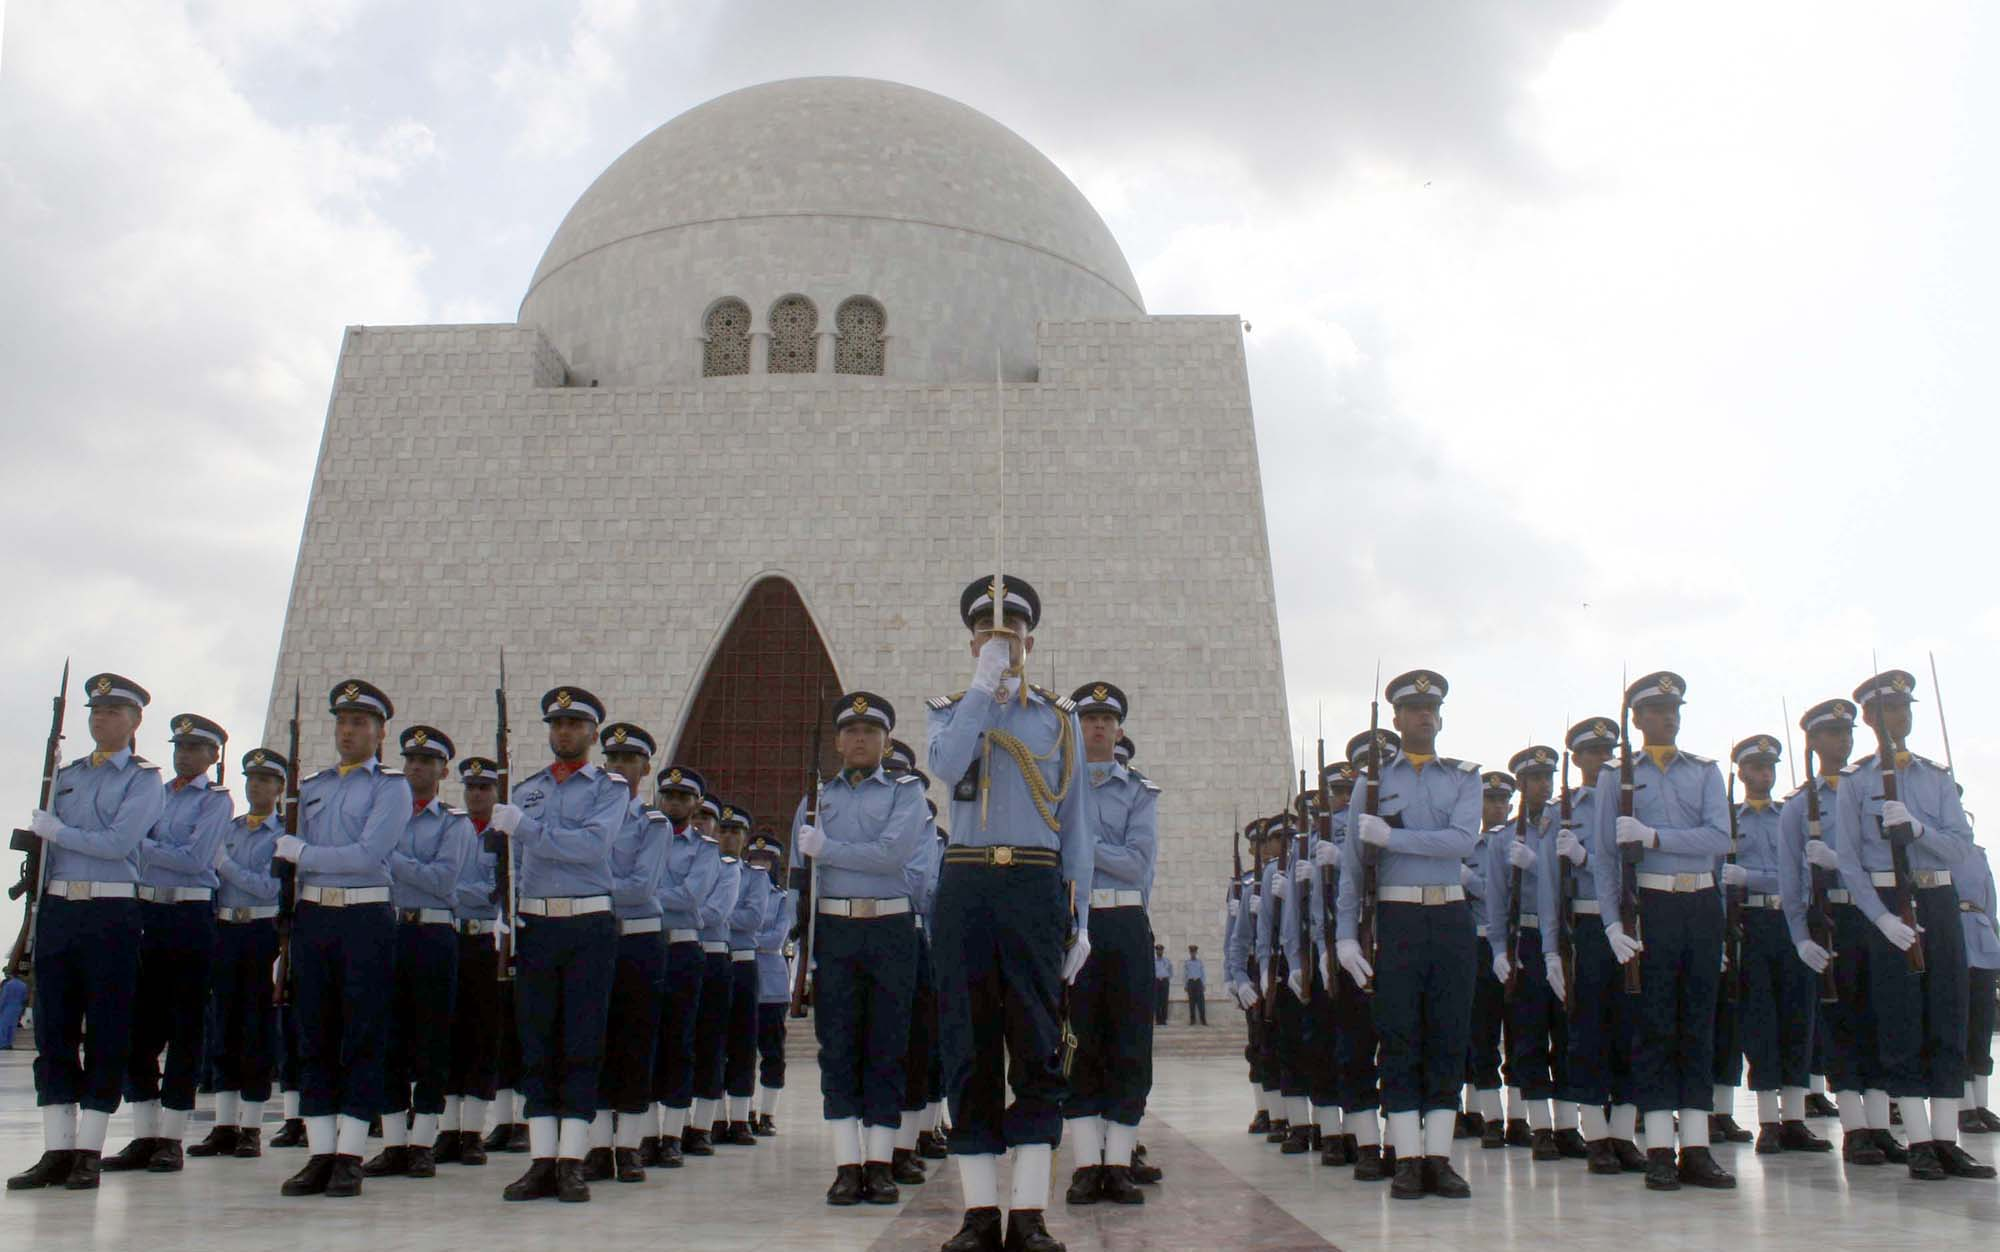 14 August At Mazar-e-Quaid